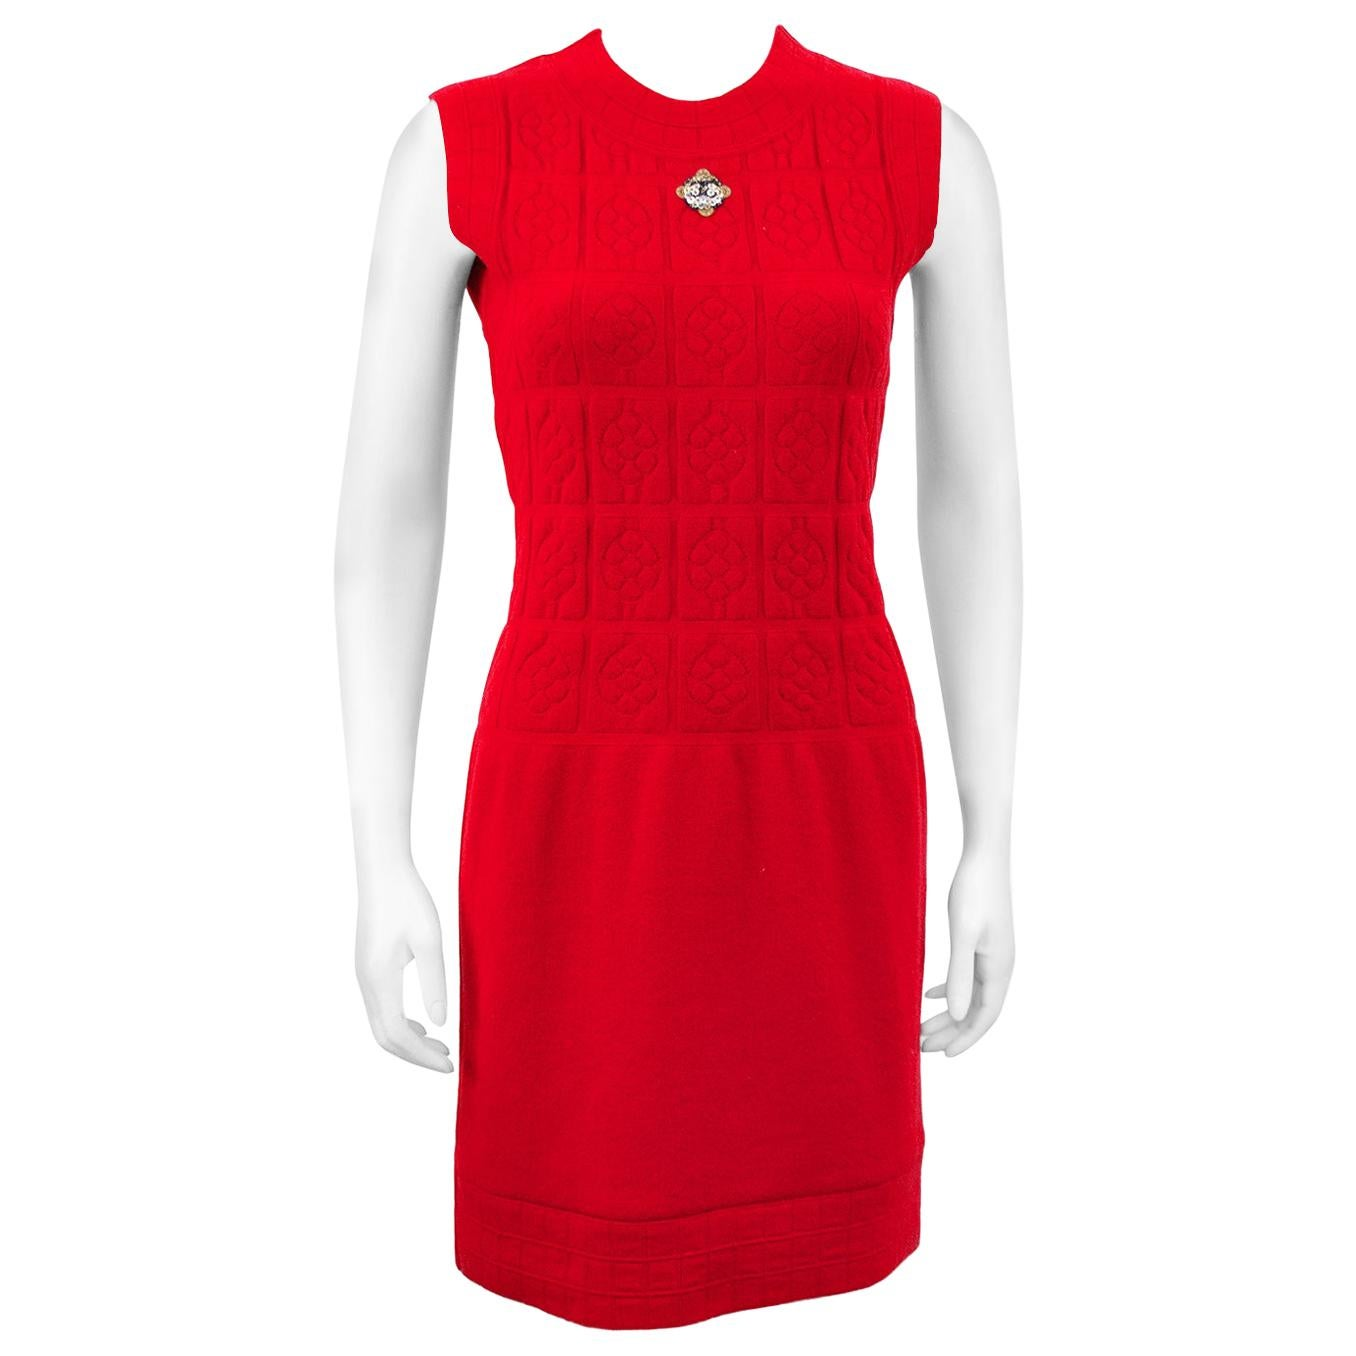 2000s Chanel Red Knit Sleevless Dress